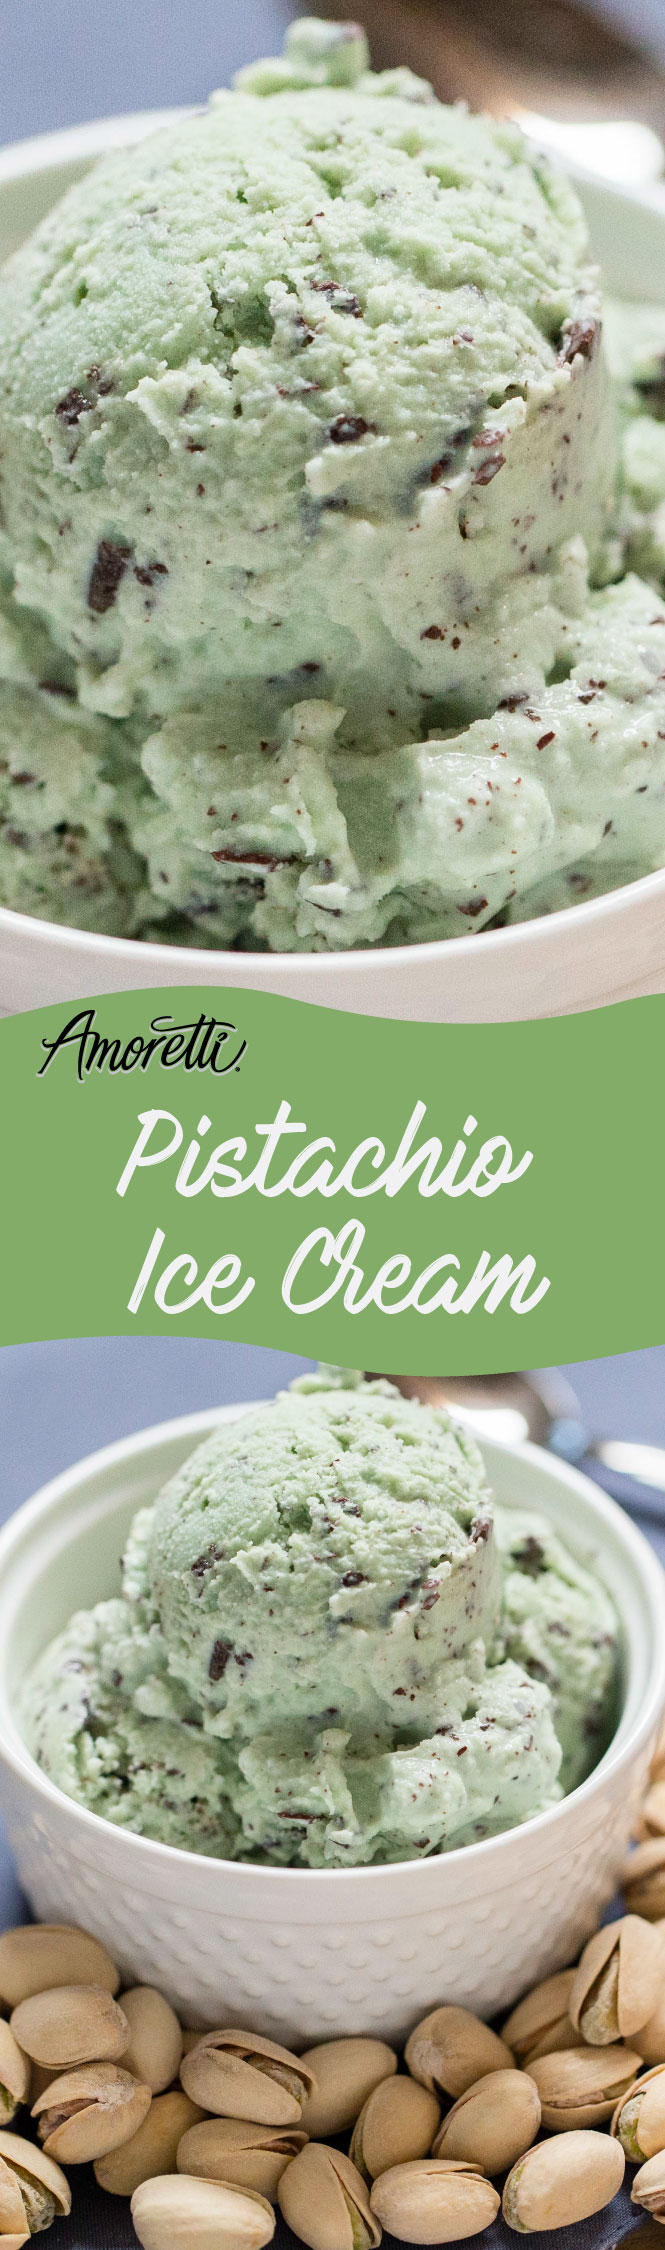 Pistachio Chocolate Chip is one our favorite ice cream flavors!